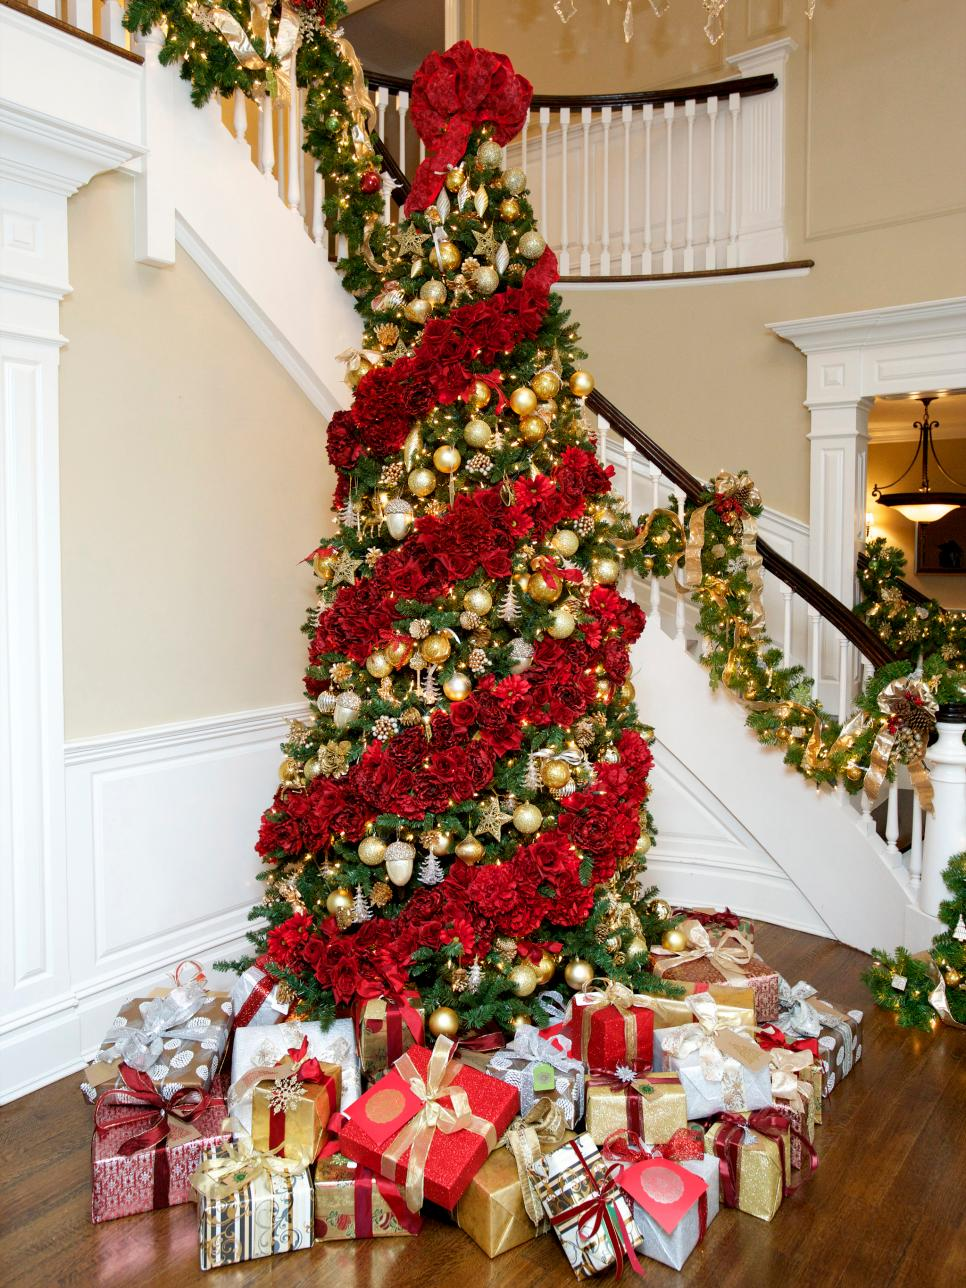 Blooming Christmas Tree Decorated With Flowers